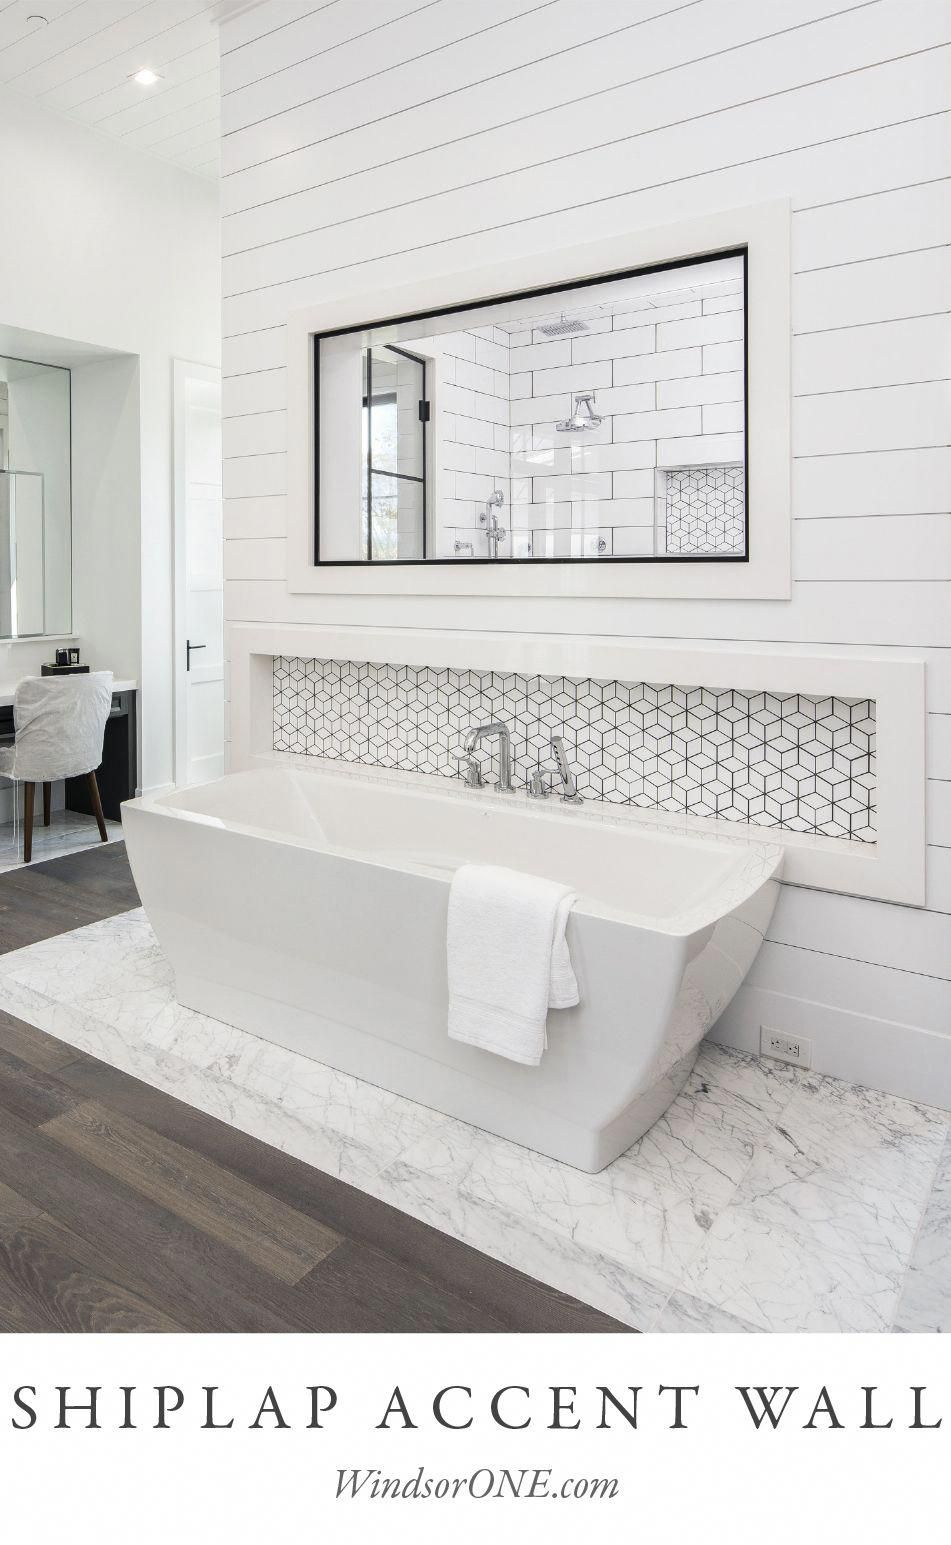 Look At This Essential Picture In Order To Browse Through The Presented Tips On Tile Shower Ideas Bathroom Renovation Diy Shiplap Accent Wall Bathroom Design